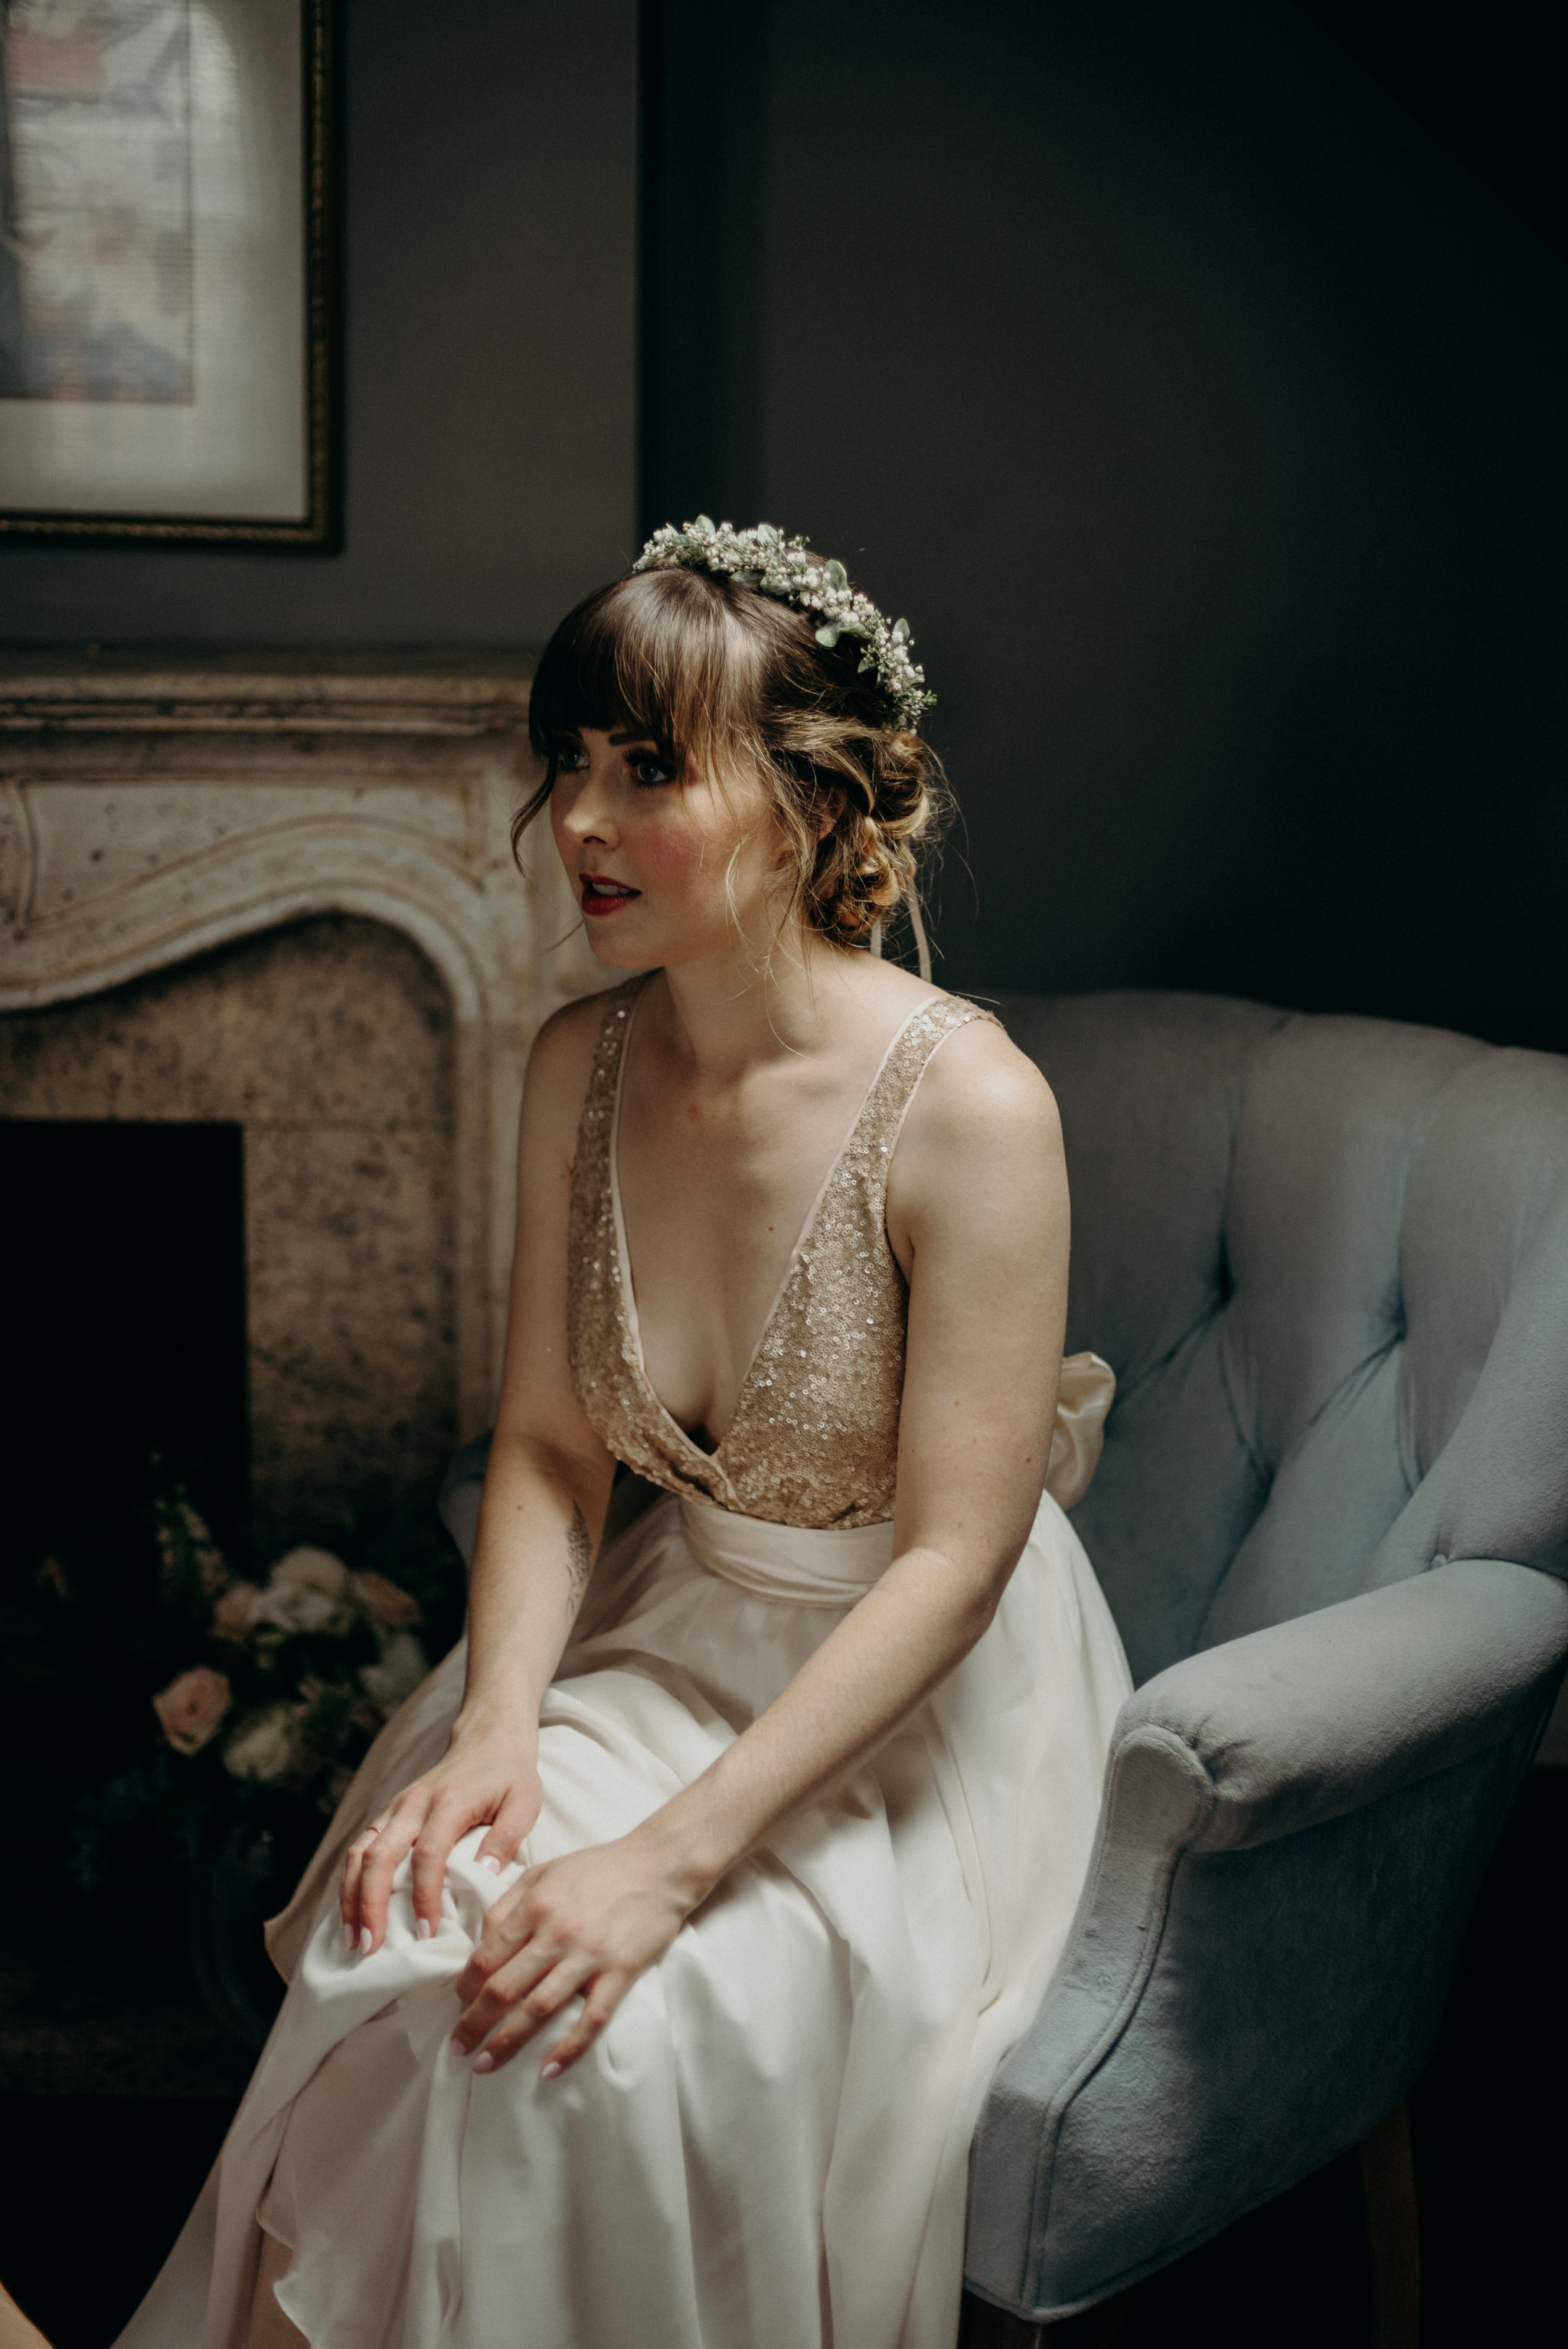 elegant bride getting ready, sitting in chair